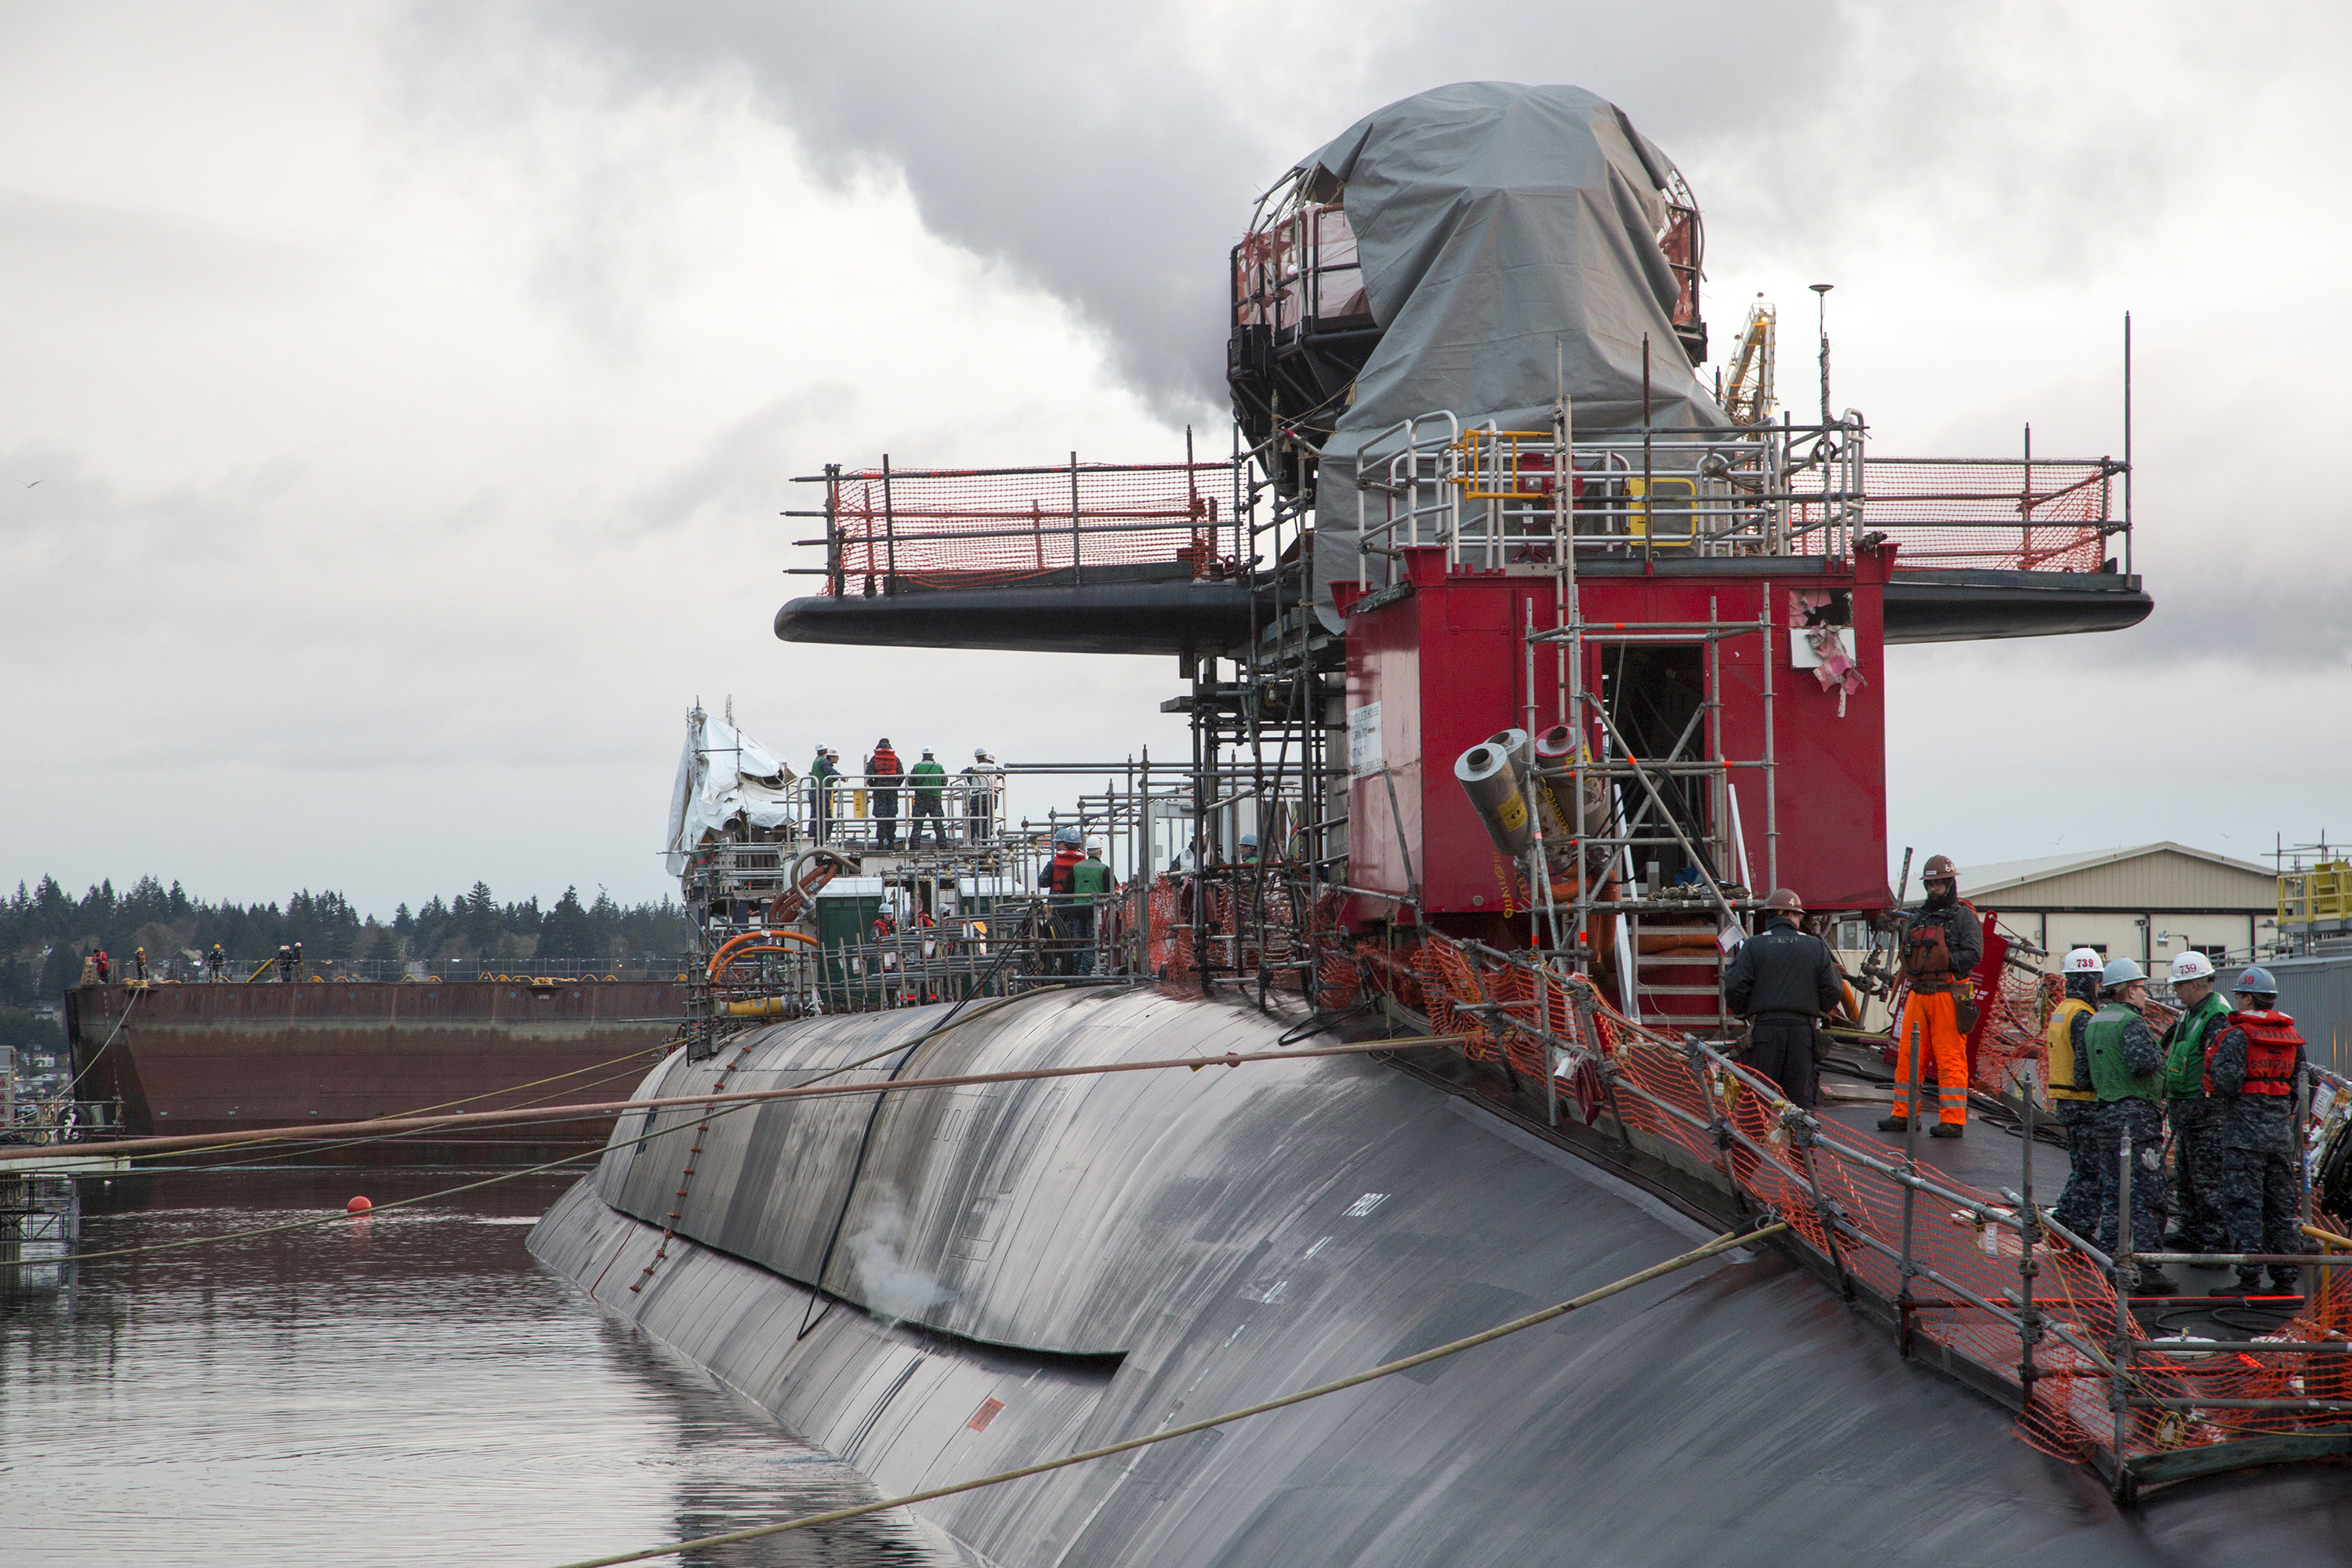 Ohio-class ballistic missile submarine USS Nebraska (SSBN 739) undocks from a dry dock at Puget Sound Navy Shipyard and Intermediate Maintenance Facility on March 8, 2016. US Navy photo.